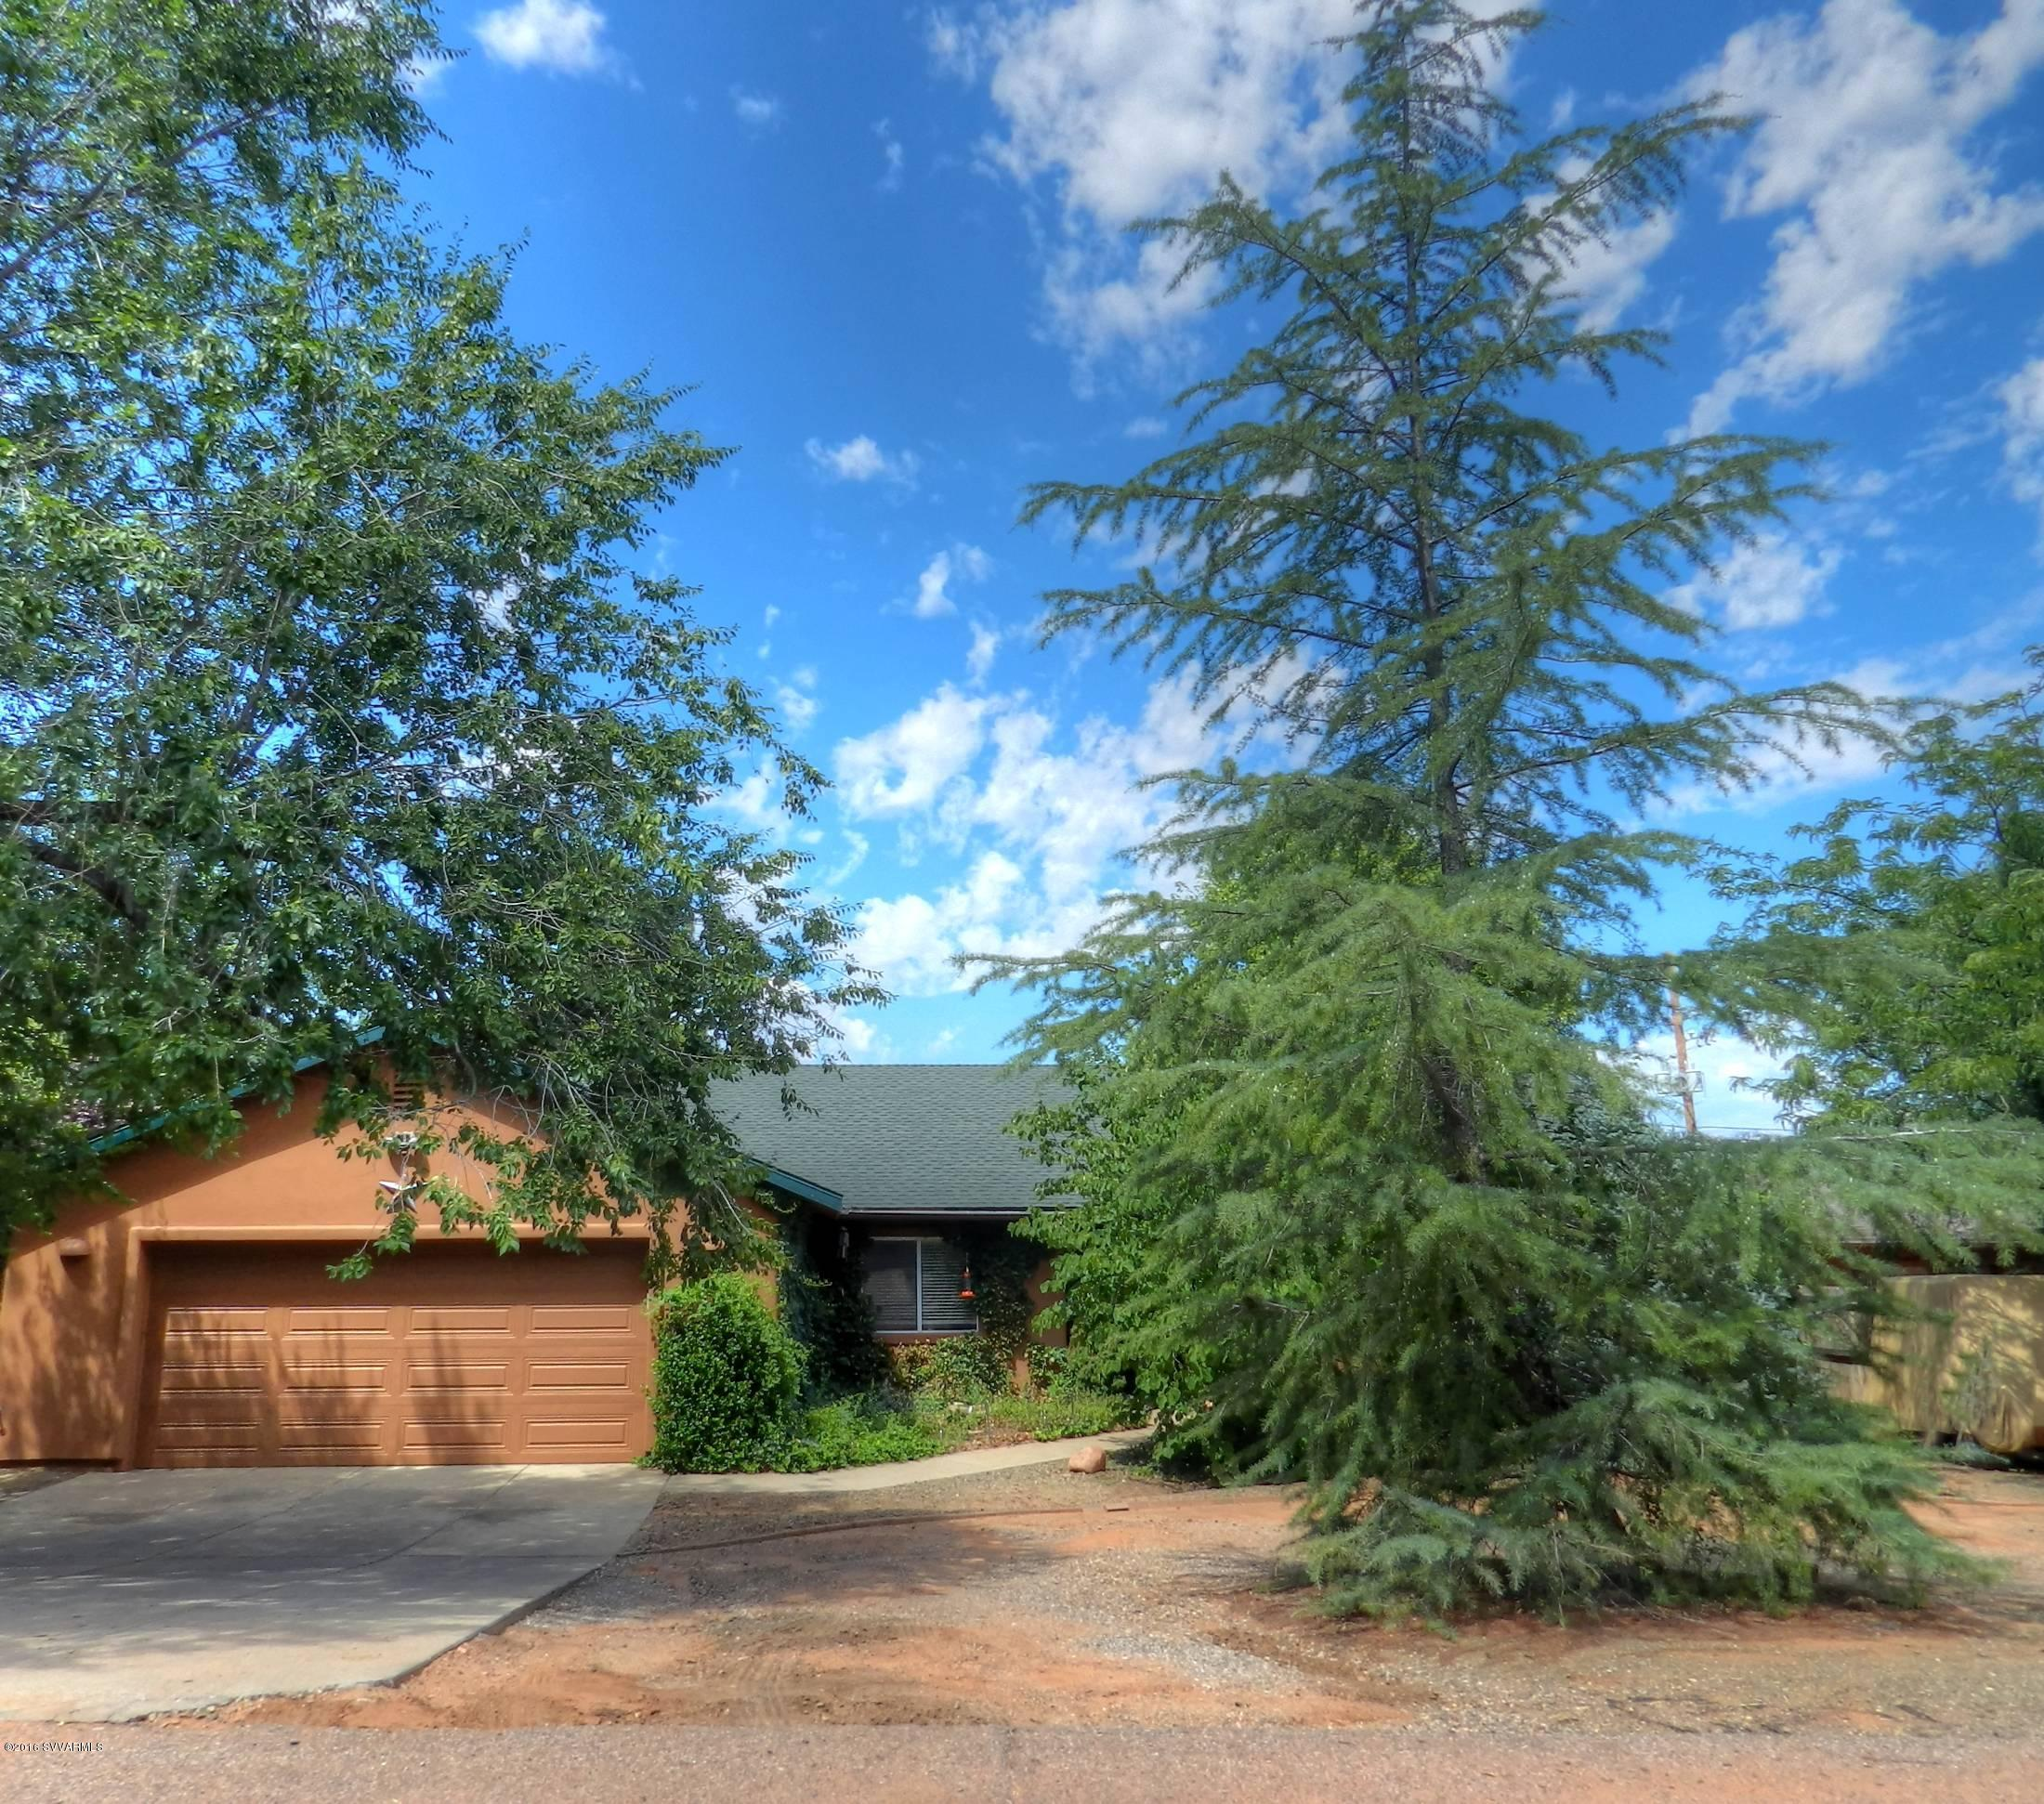 265 Oak Creek Blvd Sedona, AZ 86336